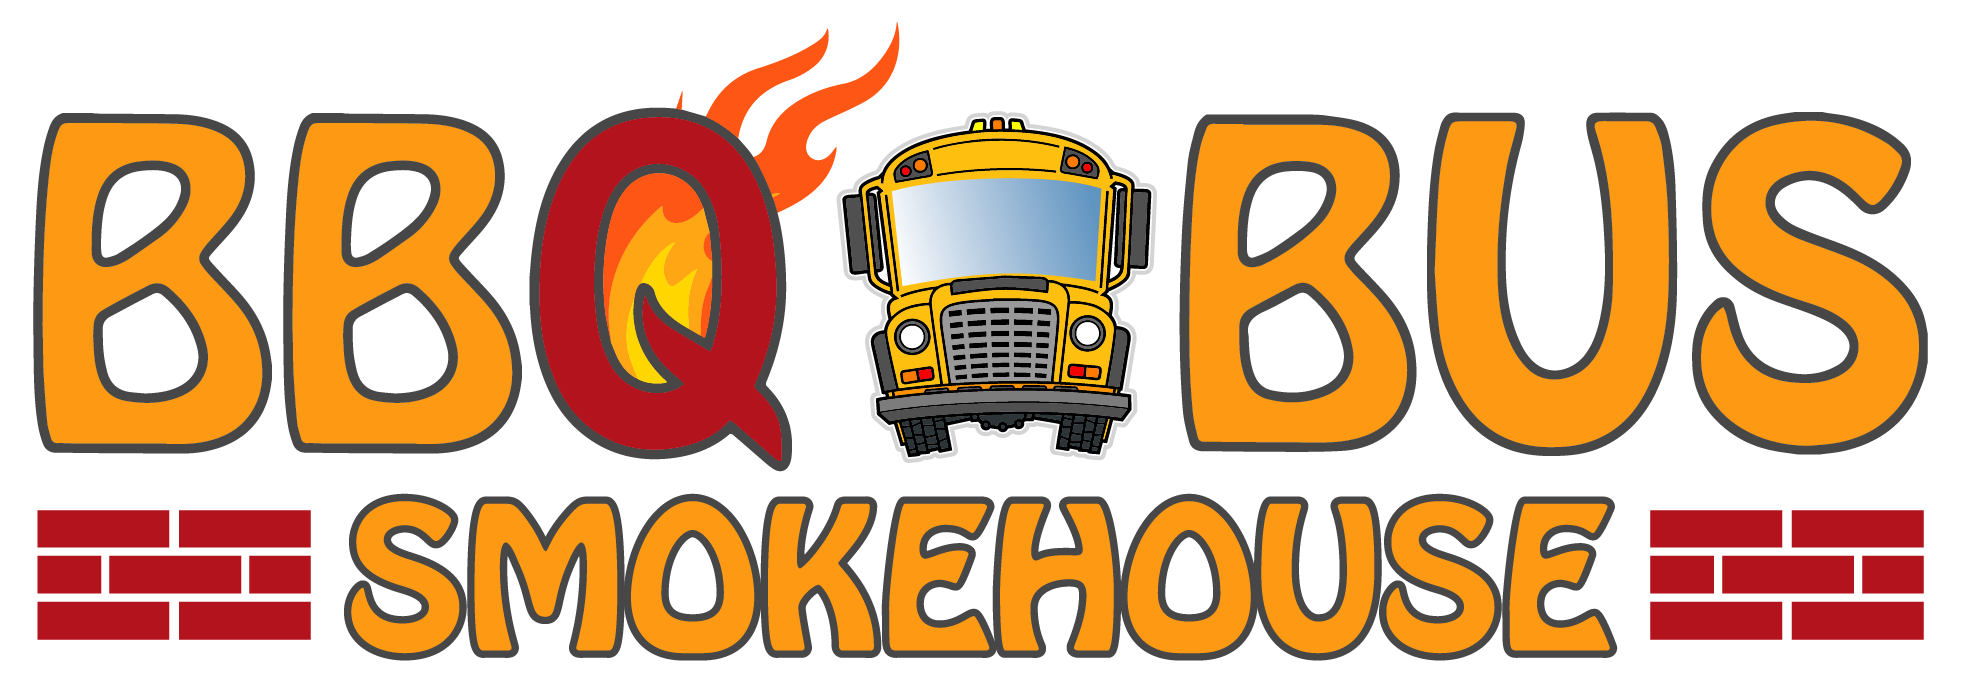 BBQ Bus Smokehouse Home